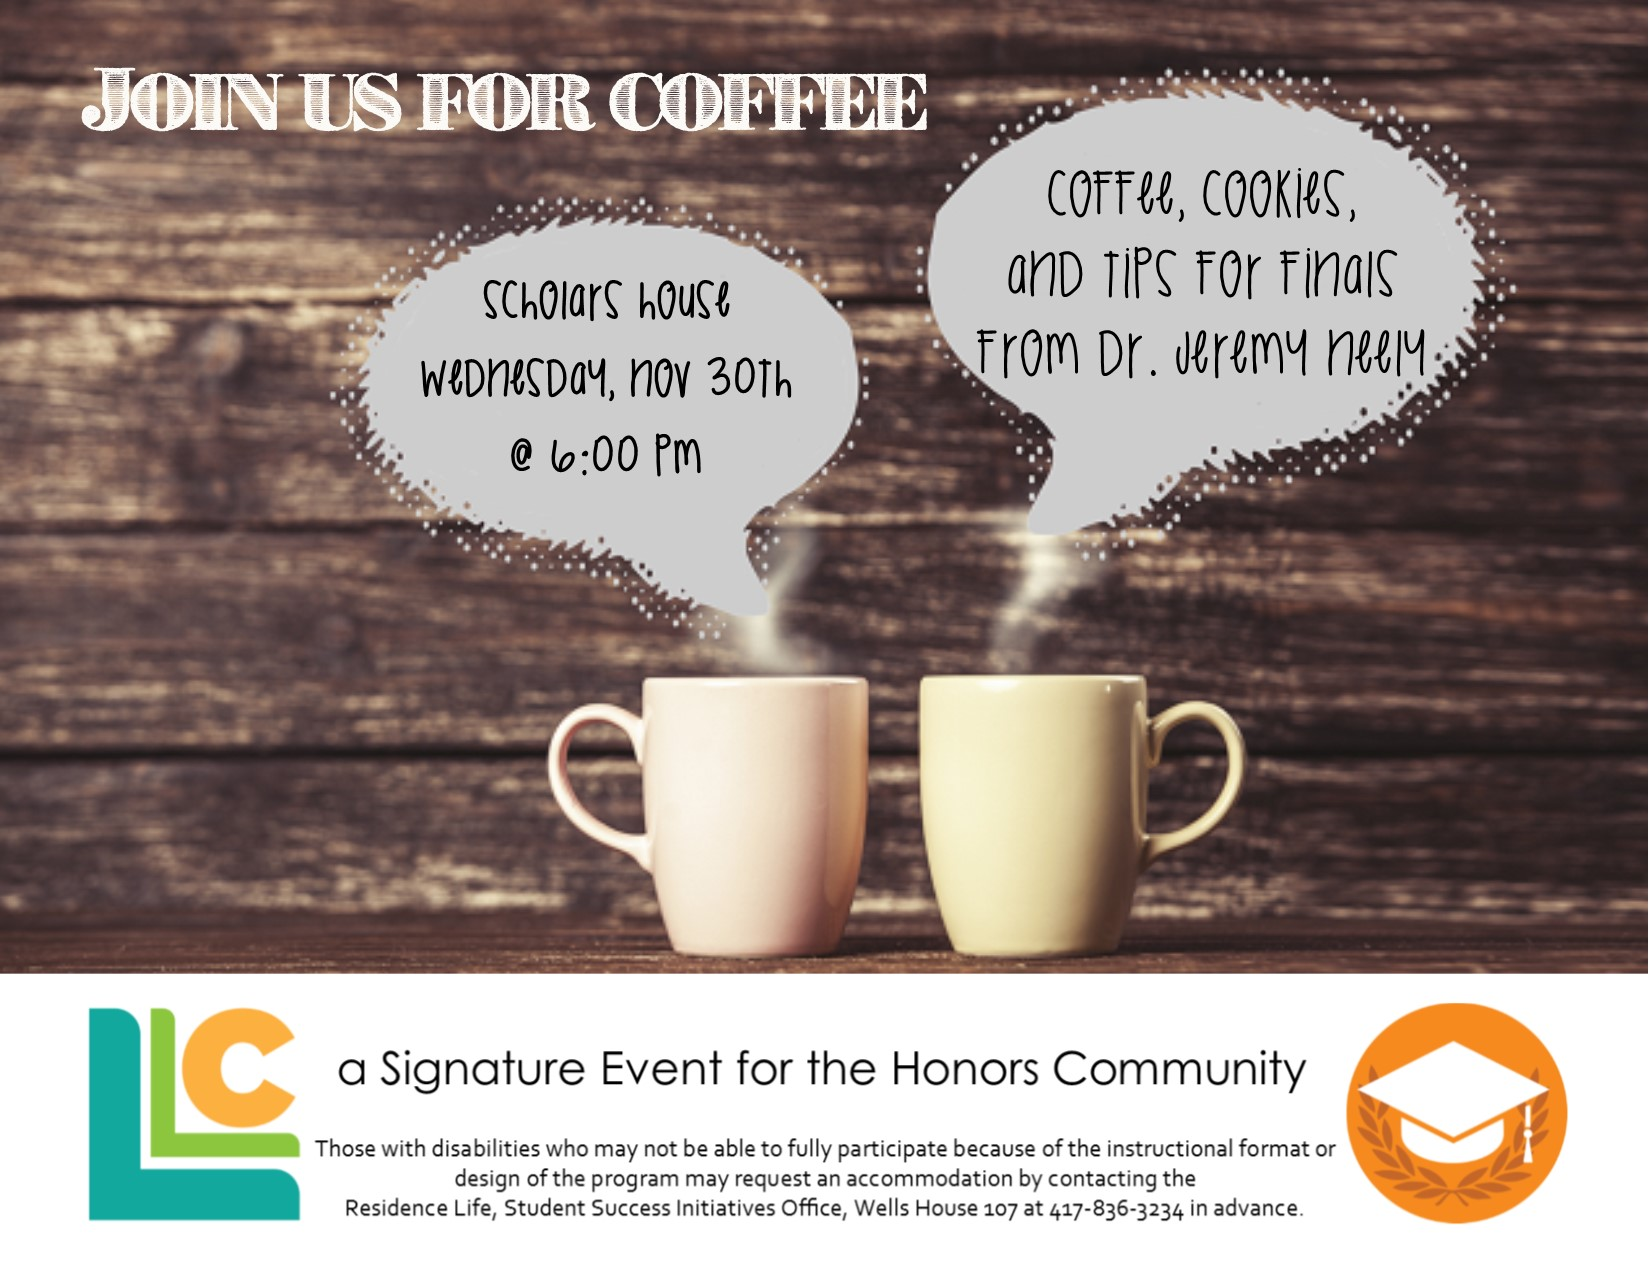 Honors Community: Coffee, cookies, and tips for finals from Dr. Jeremy Neely